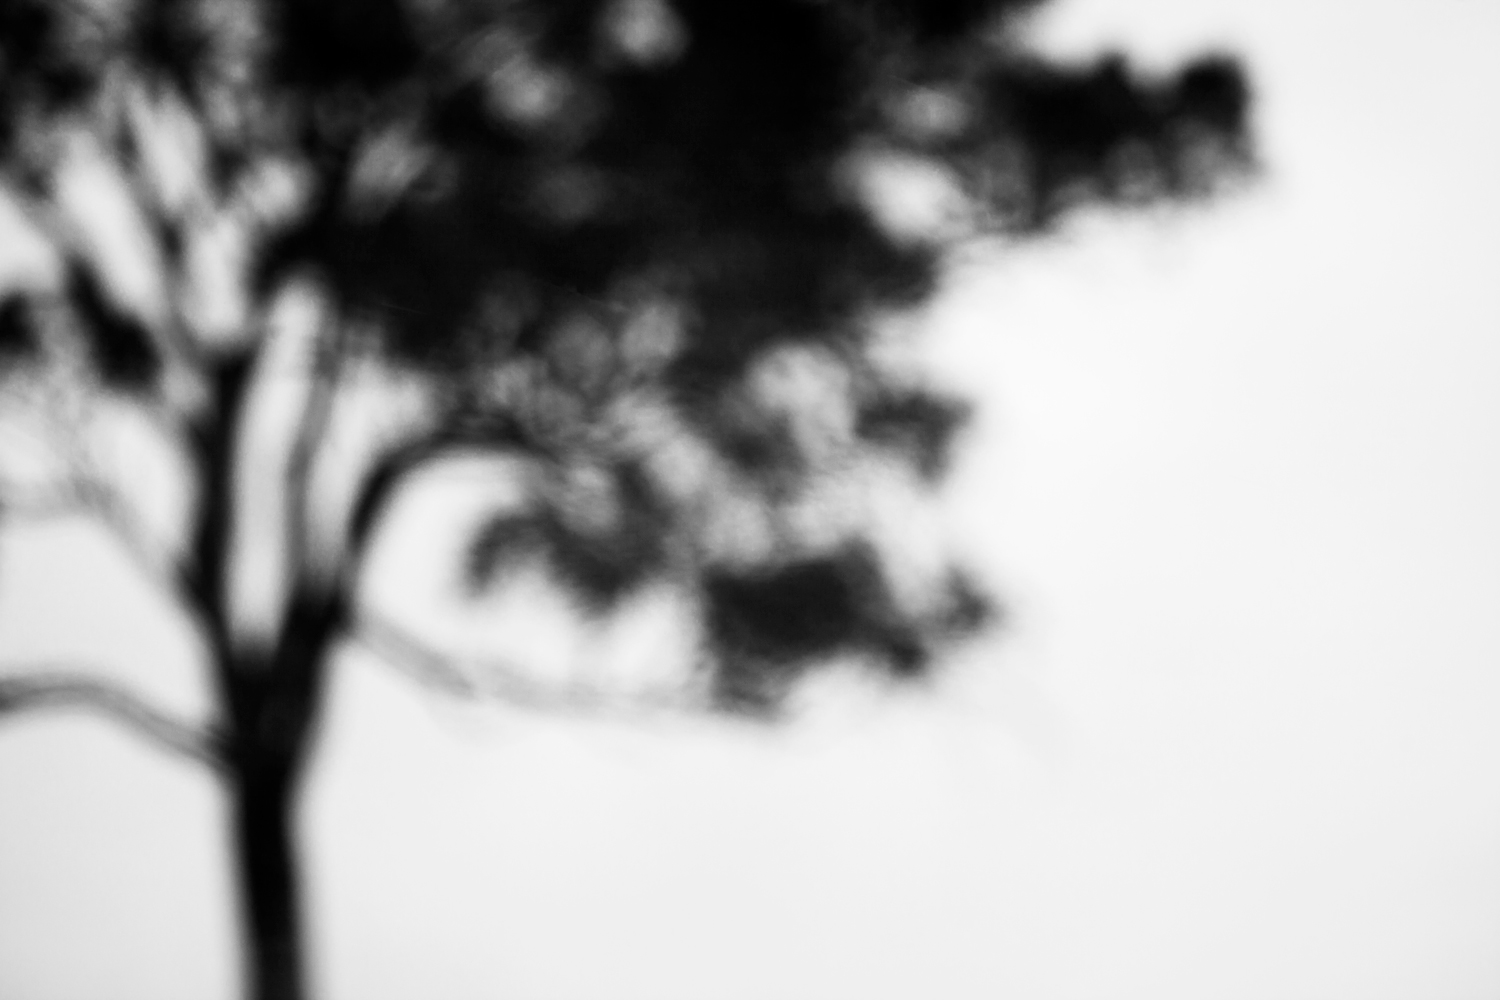 Types of photography minimalist out-of-focus tree